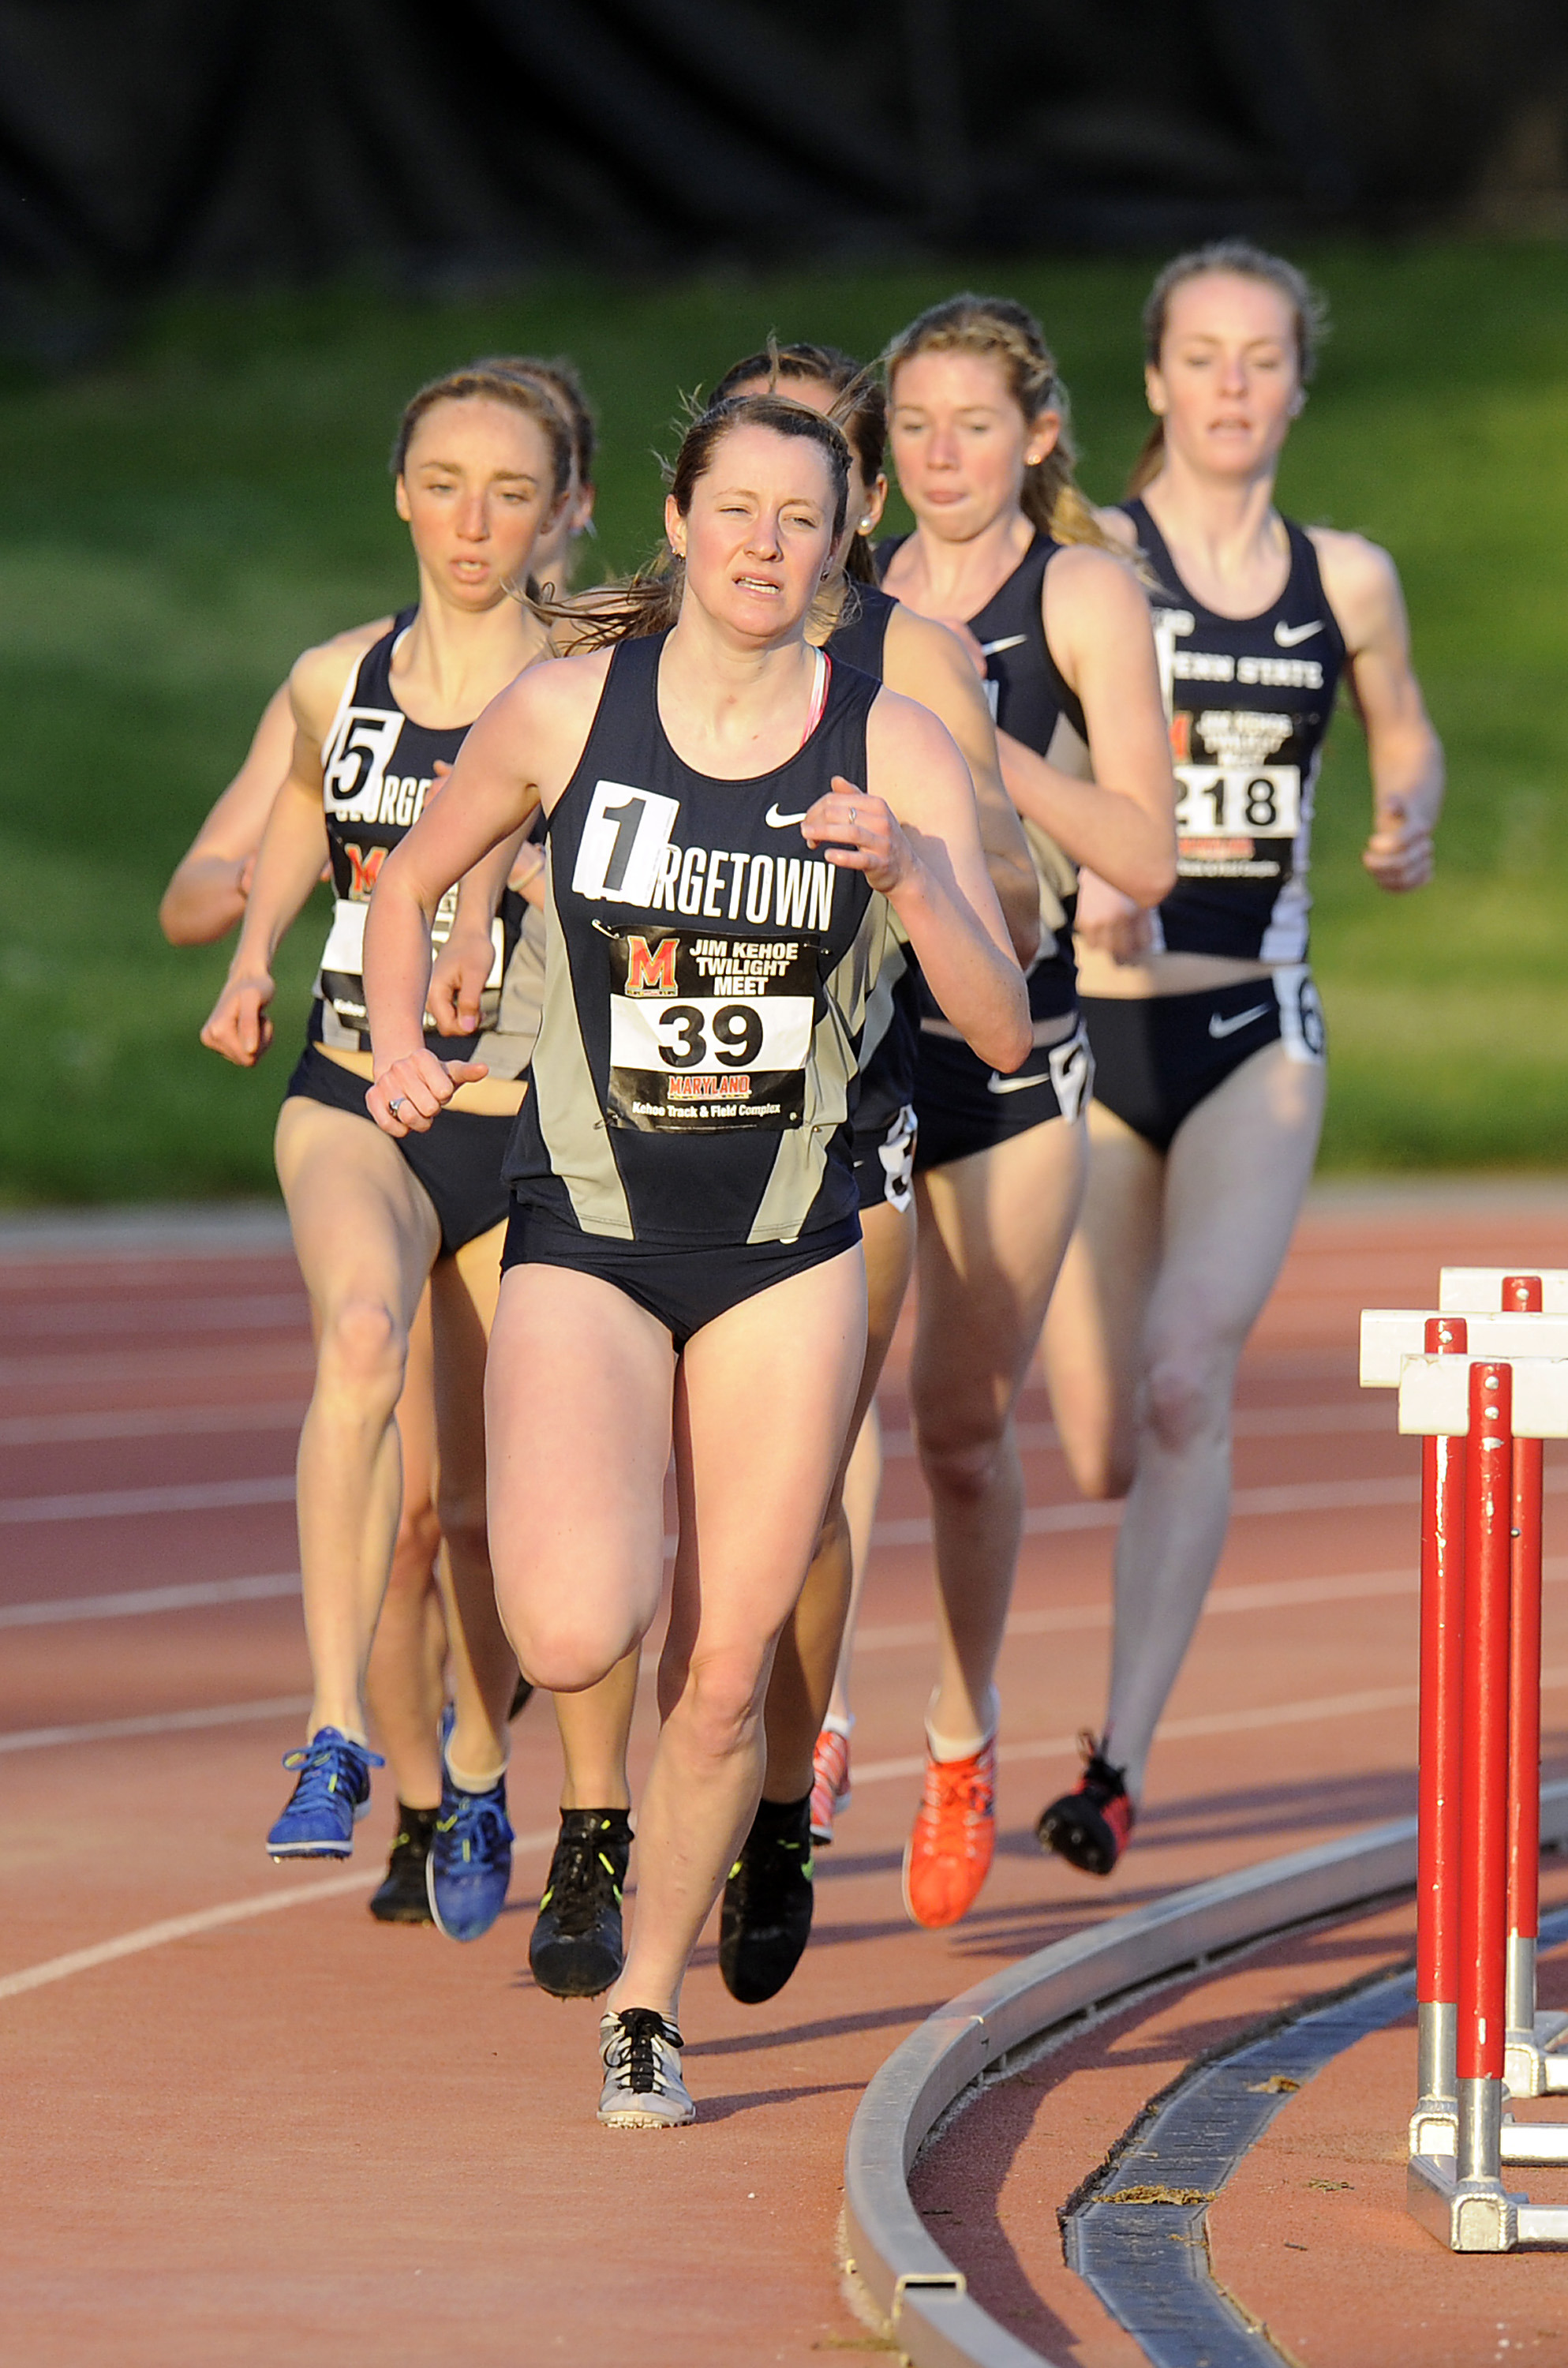 The Hoyas send 29 to compete at the 2014 NCAA T&F East Prelim.